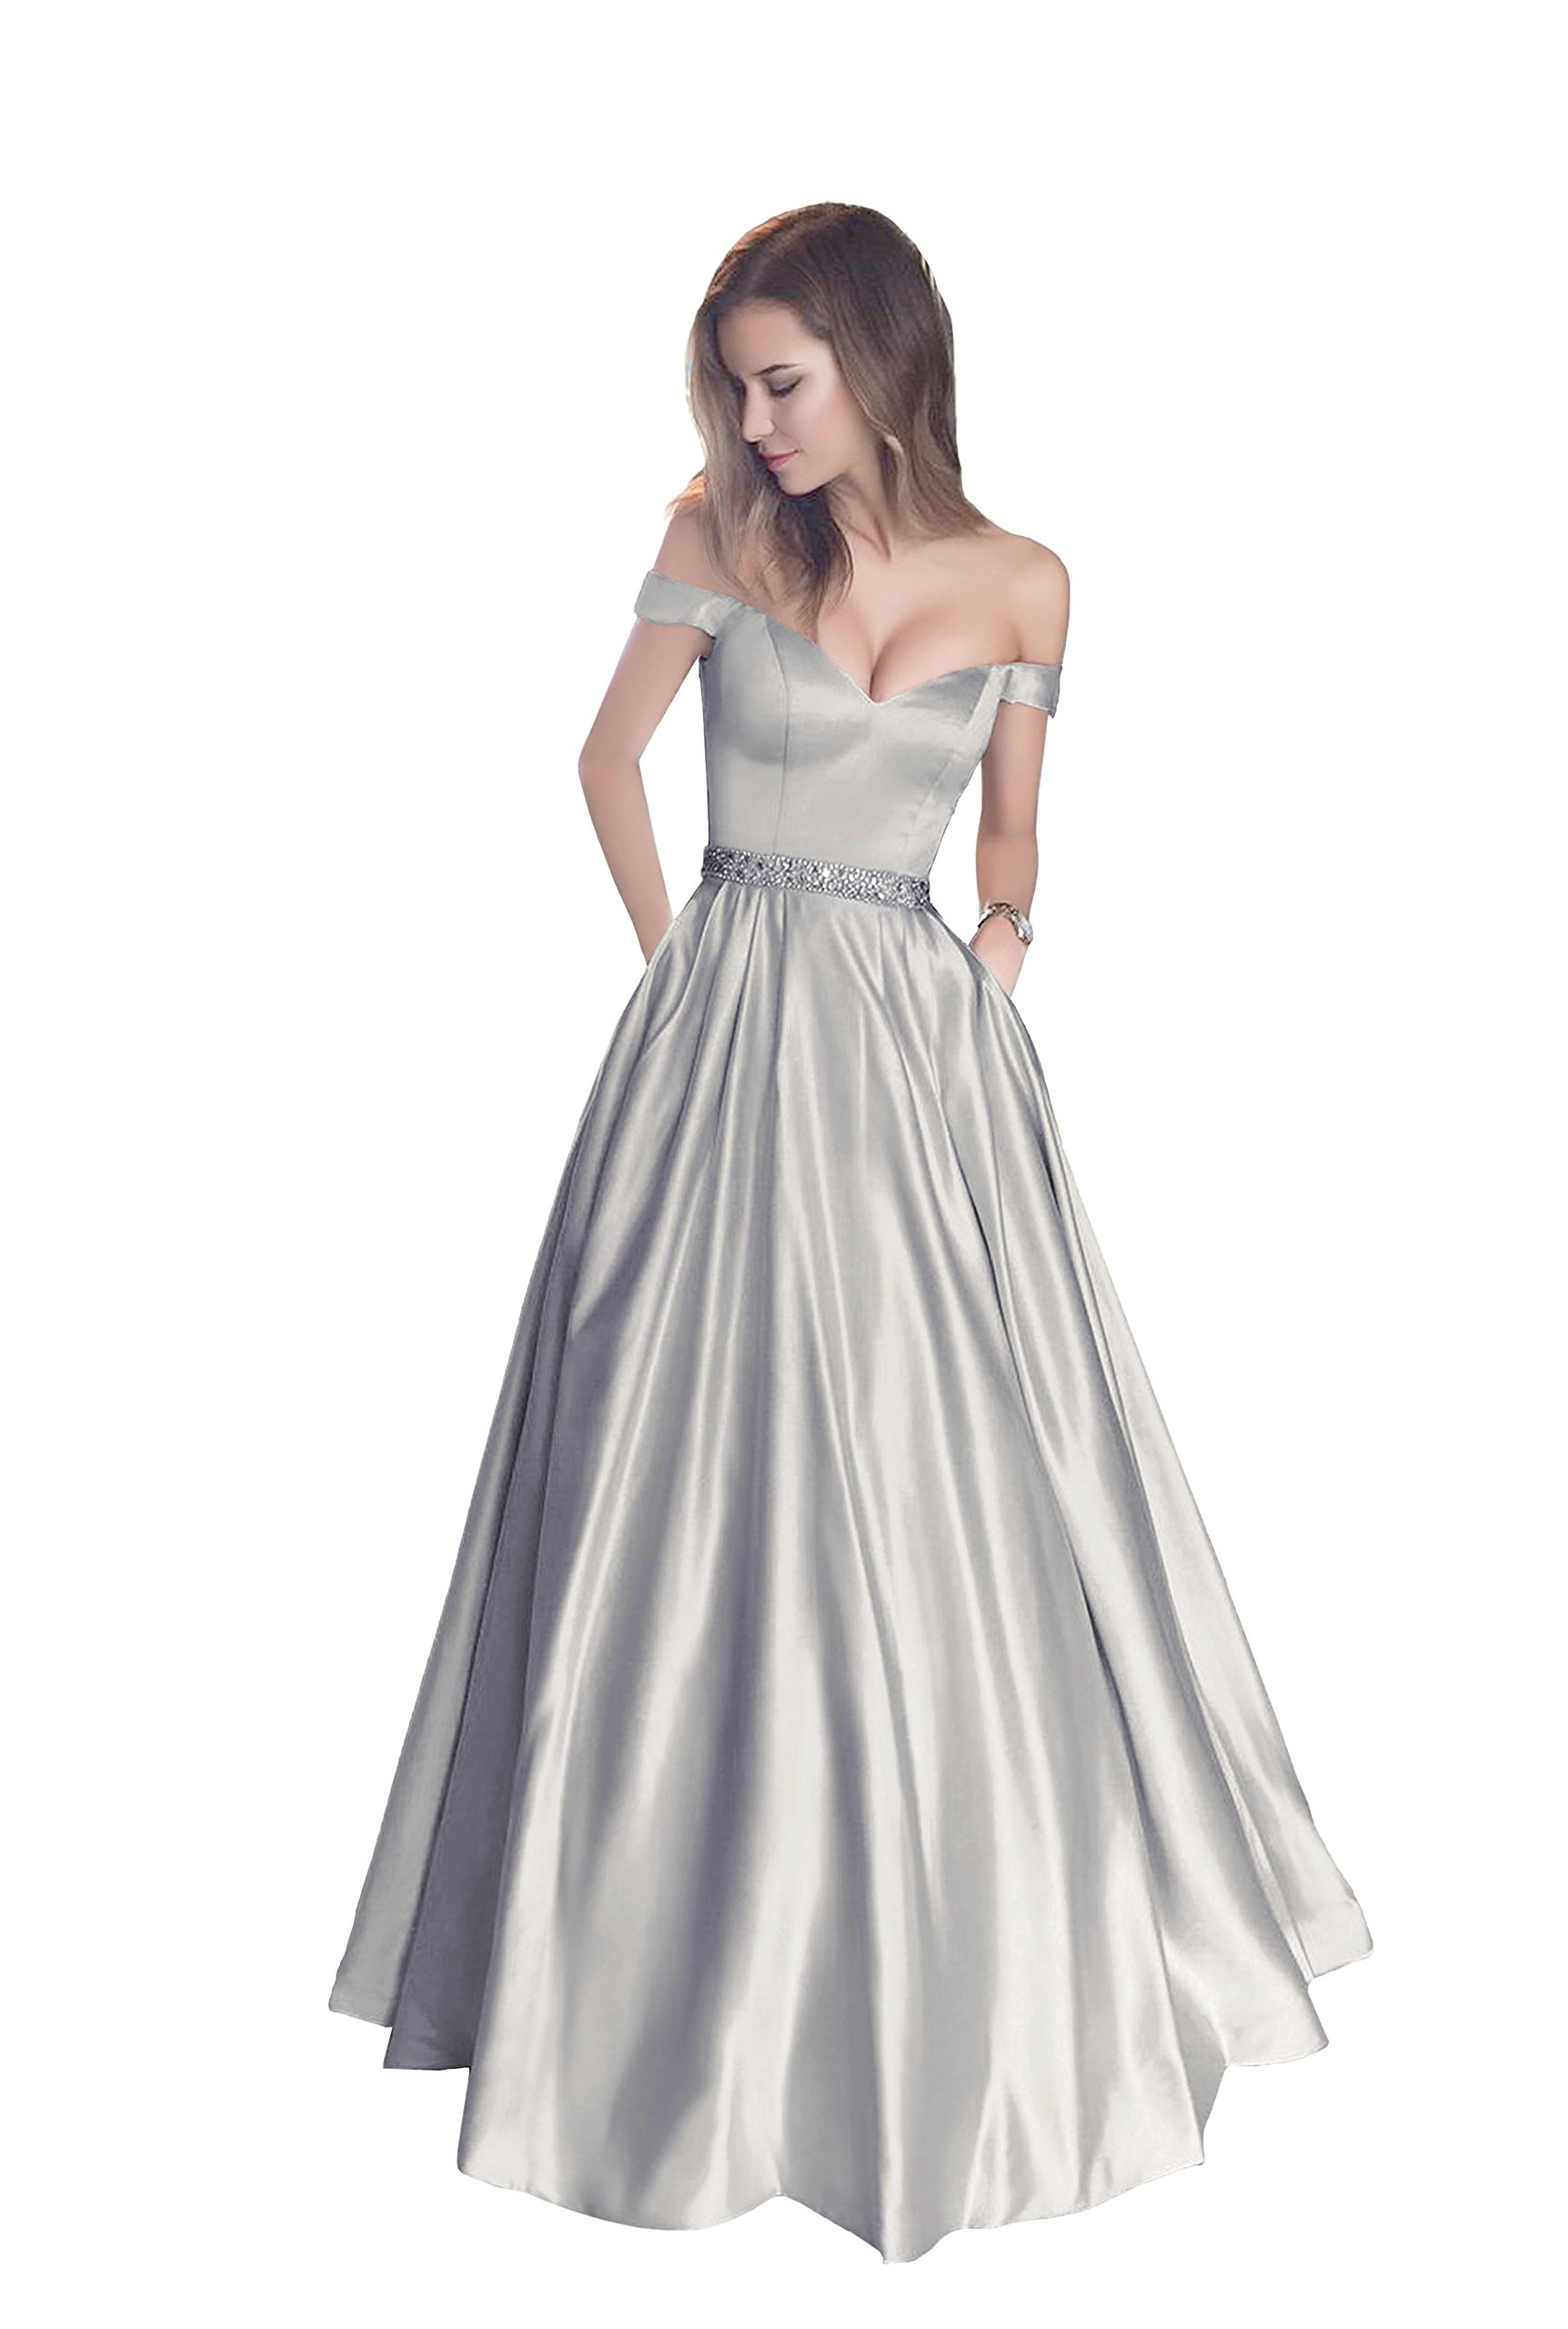 Harsuccting Off The Shoulder Beaded Satin Evening Prom Dress with Pocket Grey 4